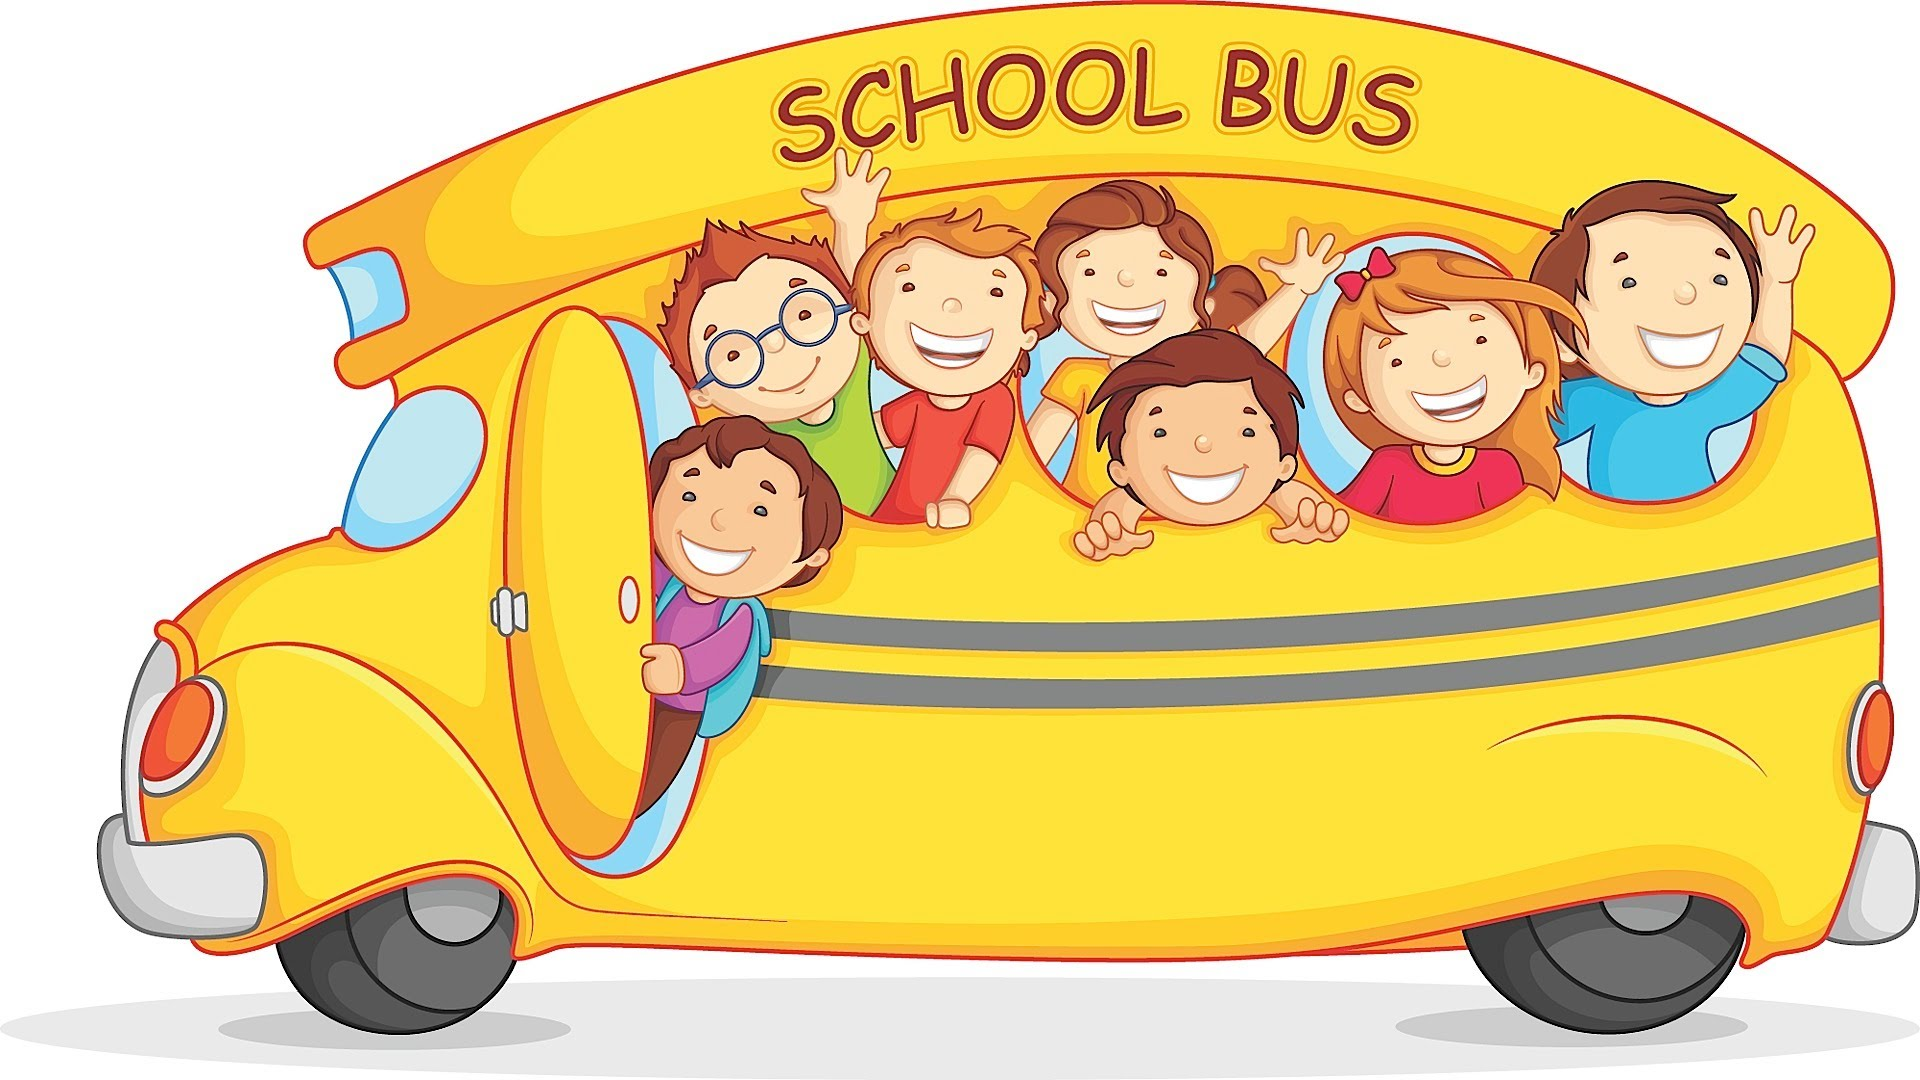 The Wheels On The Bus Clipart.